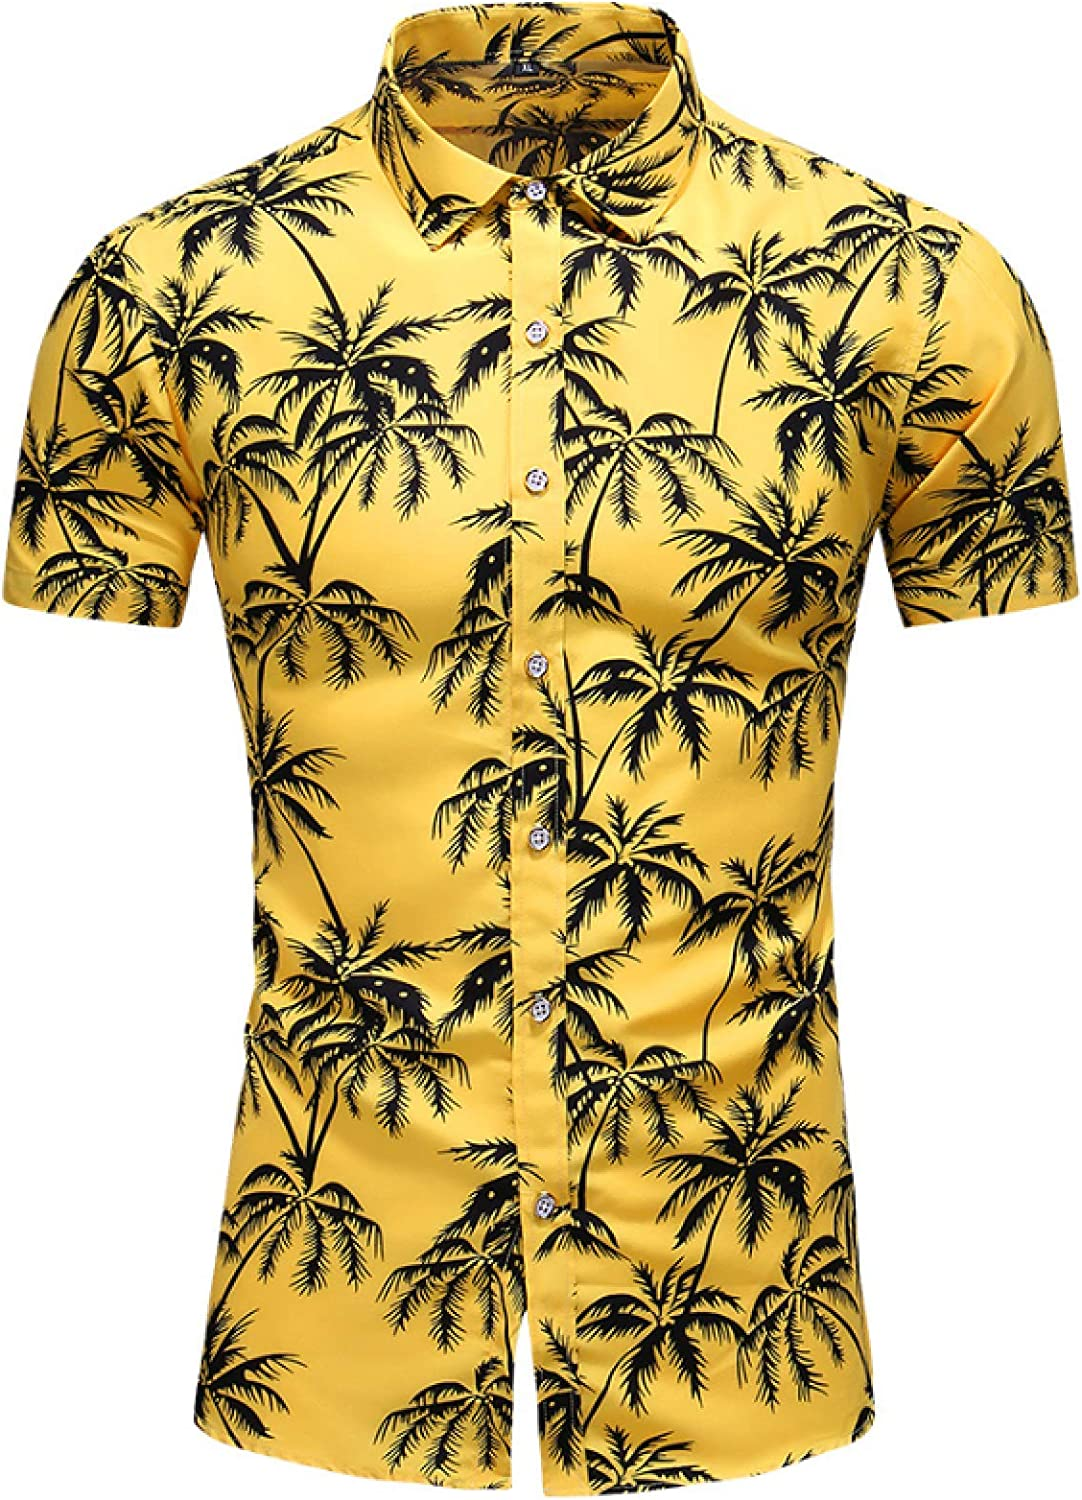 Men's Short-Sleeved Shirts Stylish Super All stores are sold popular specialty store Hawaiian Fashionable